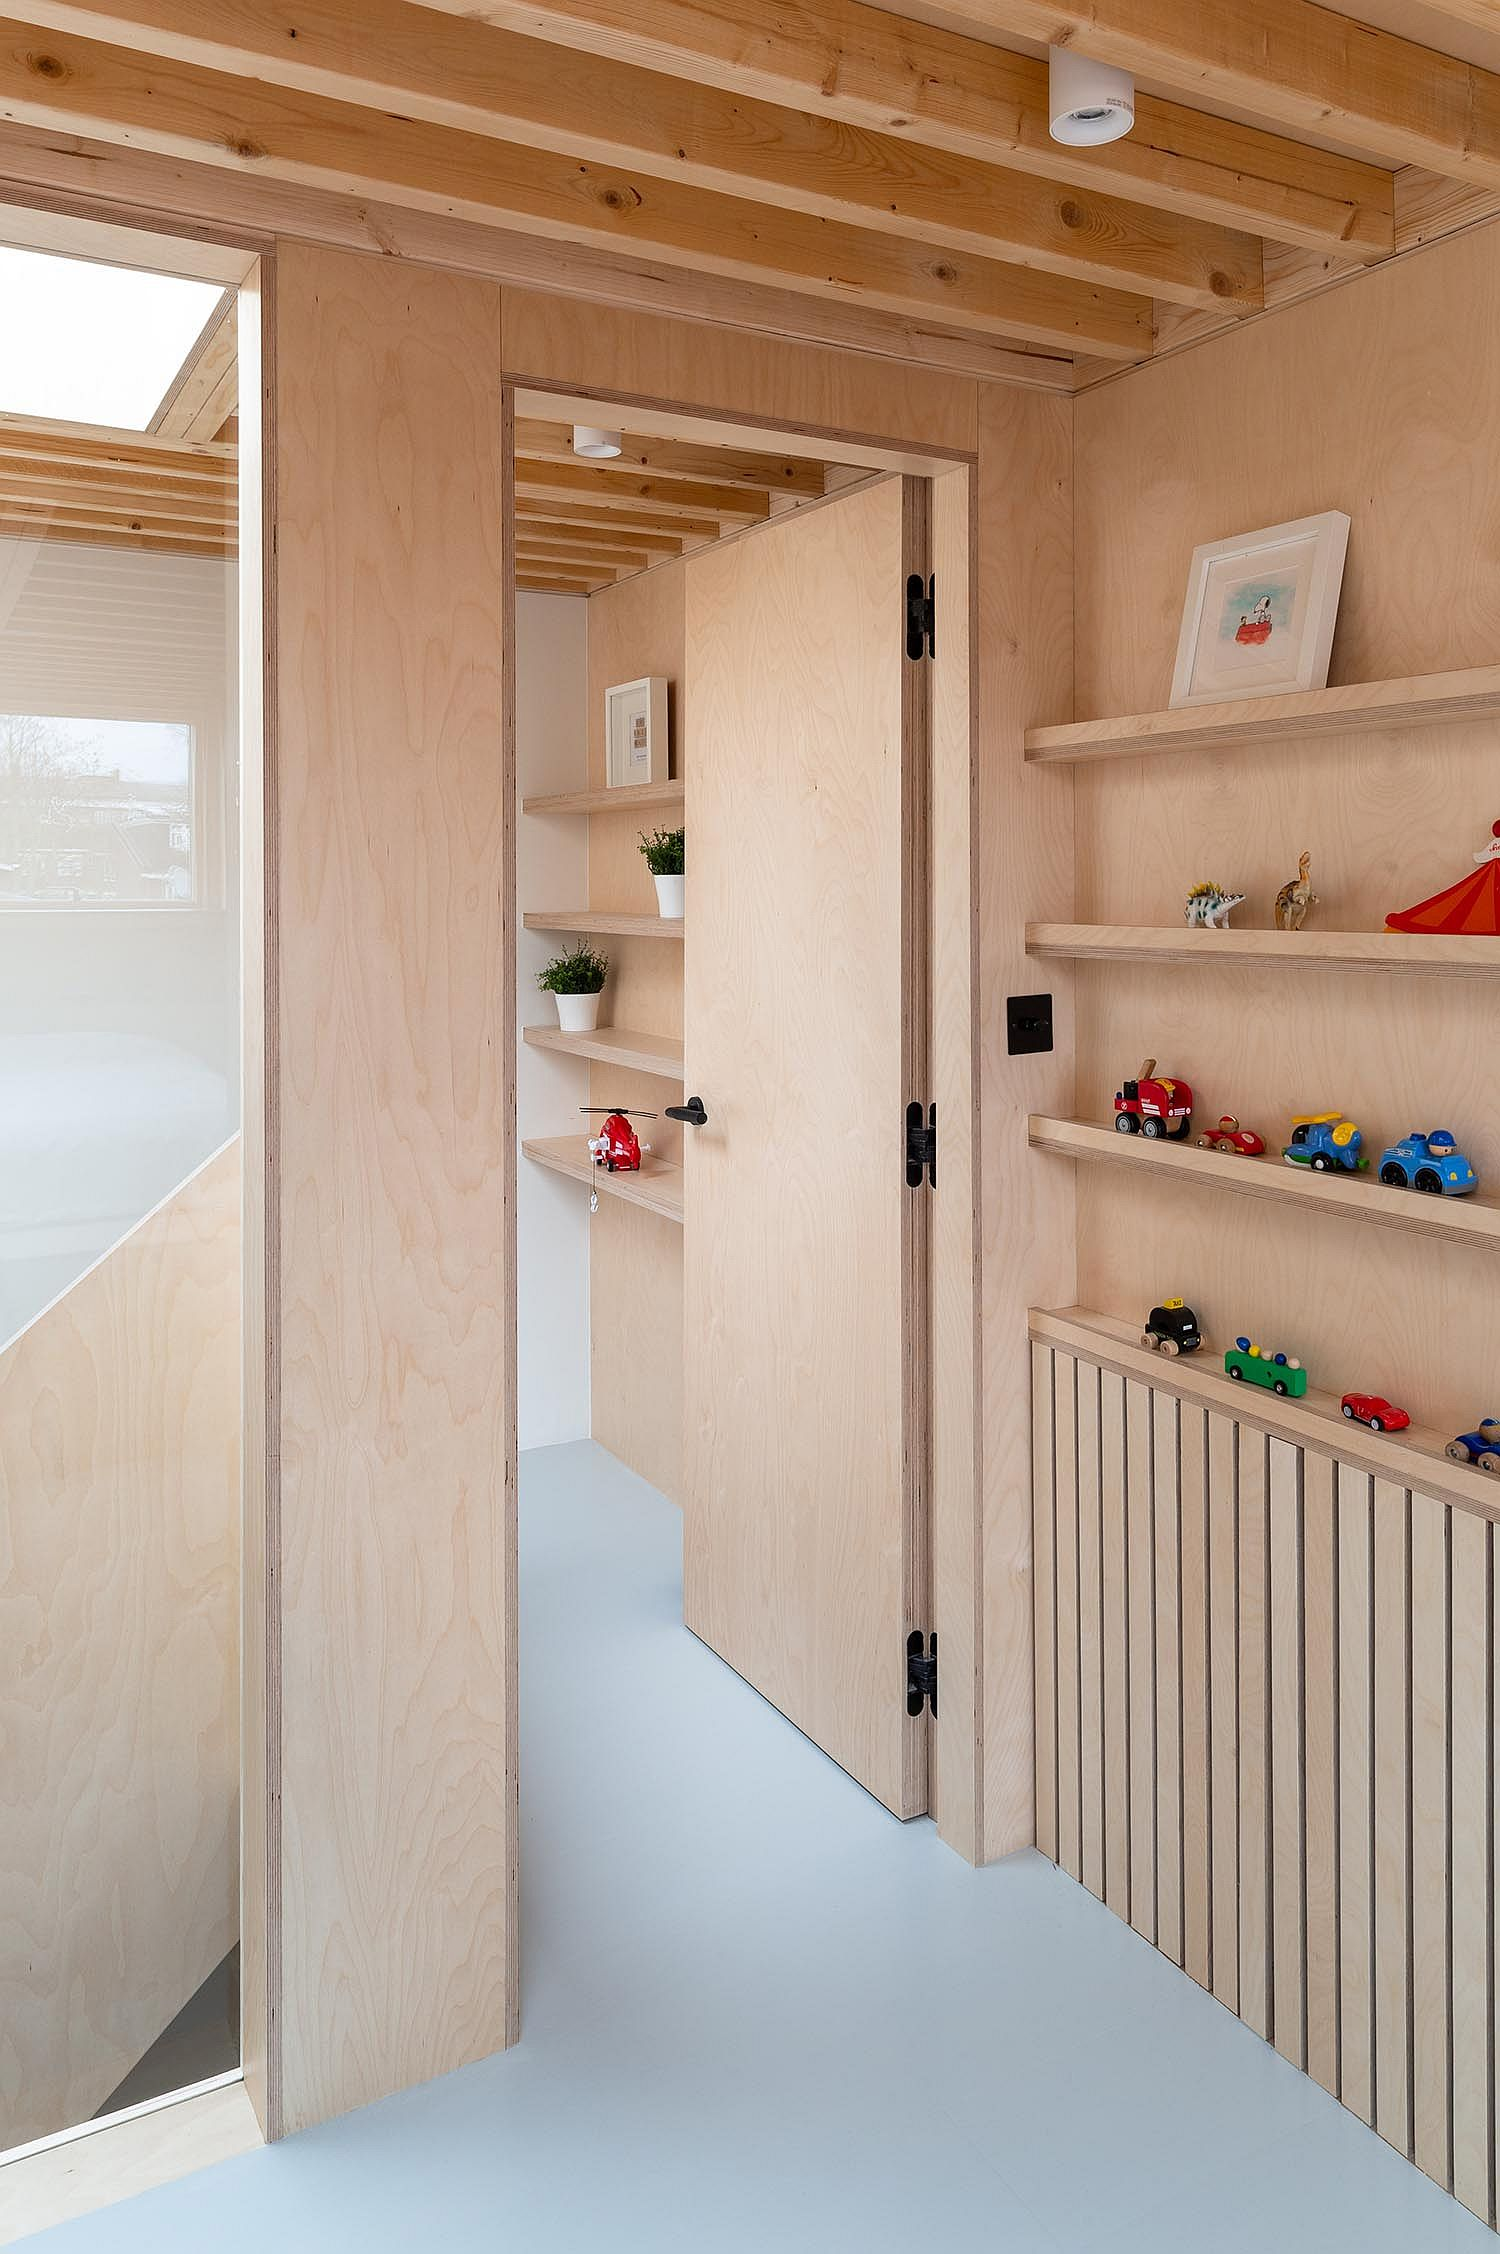 Spaces-redesigned-inside-the-house-using-plywood-walls-and-lovely-rooms-67000